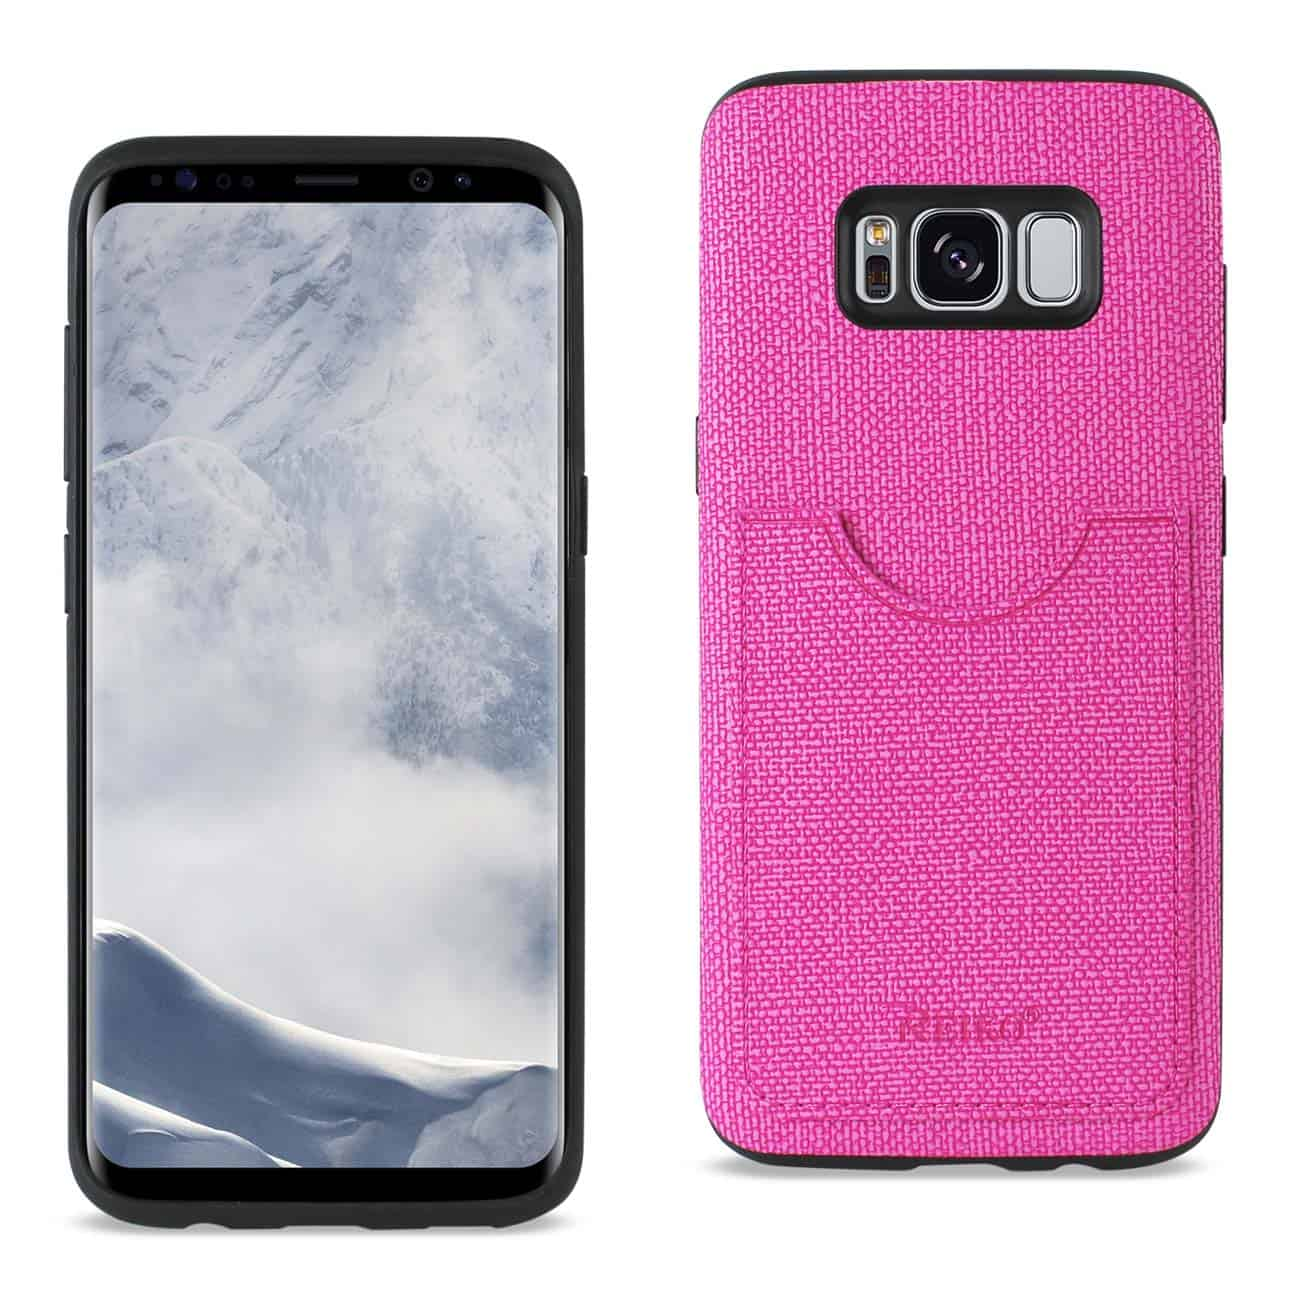 SAMSUNG GALAXY S8 EDGE/ S8 PLUS ANTI-SLIP TEXTURE PROTECTOR COVER WITH CARD SLOT IN HOT PINK